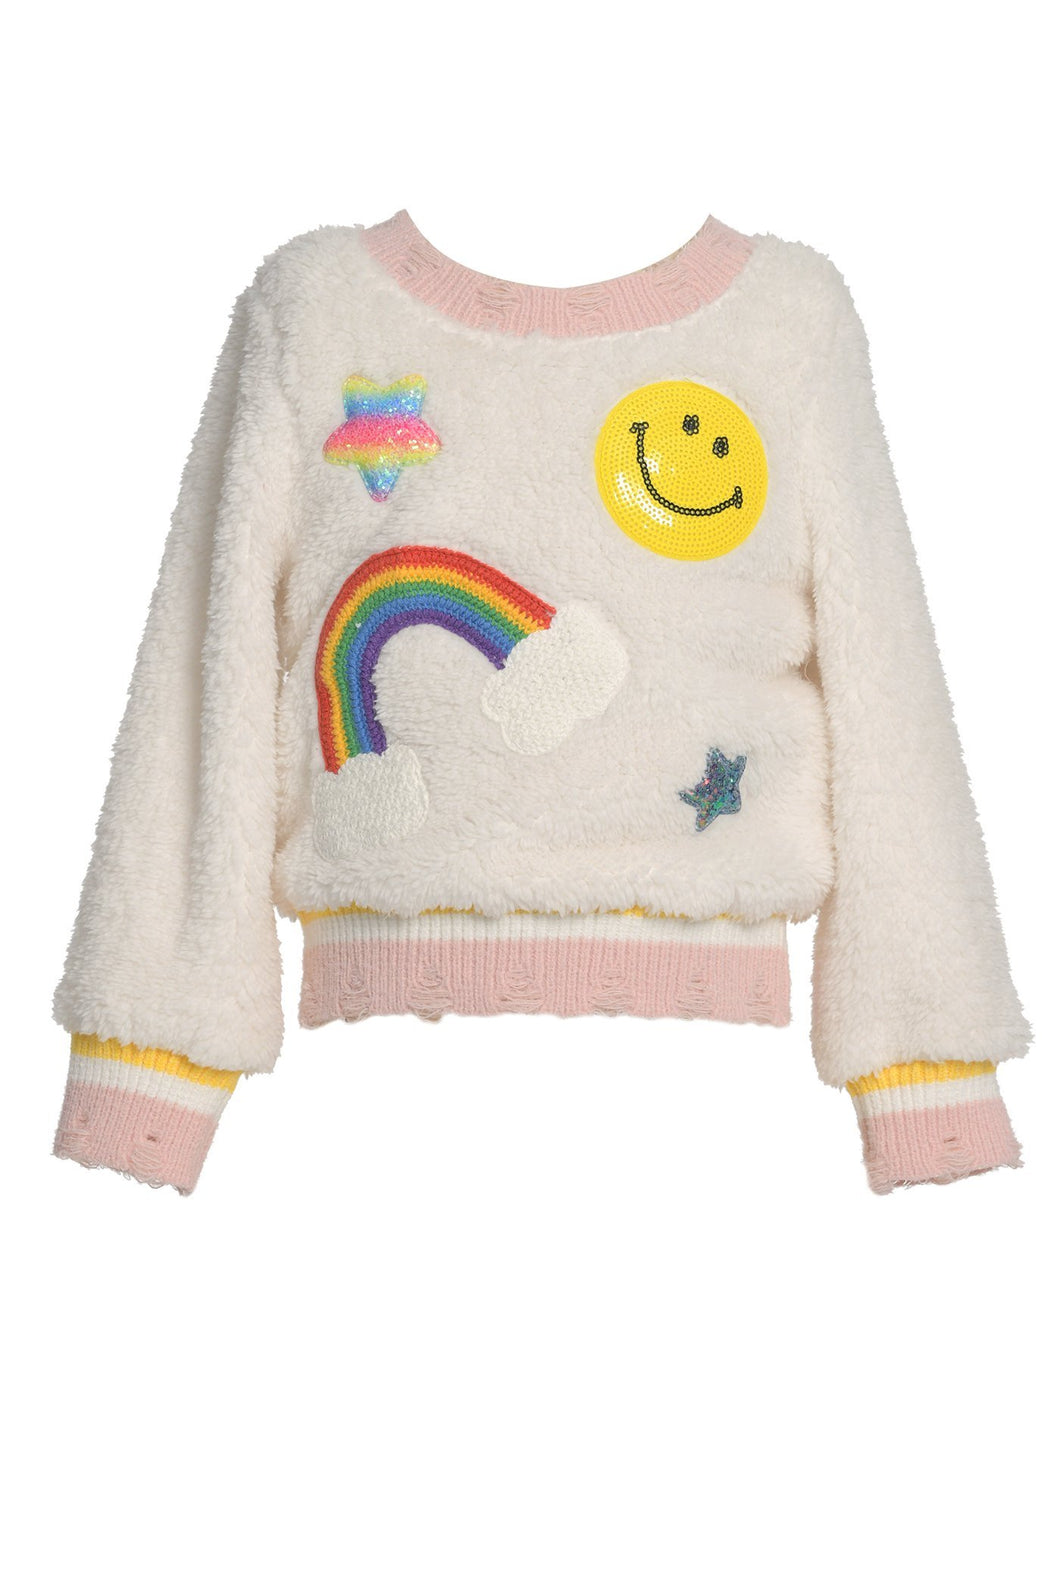 Baby Sara Off White Sherpa Sweater Top W/ Patches